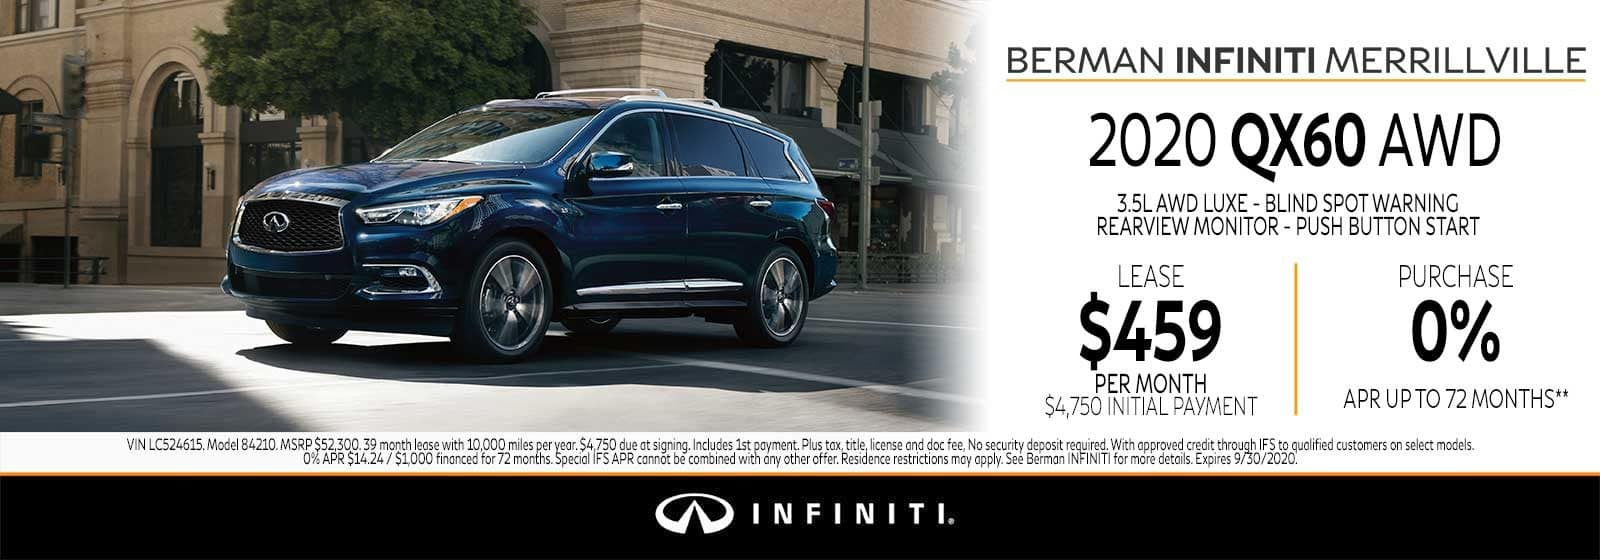 New 2020 INFINITI QX60 September Offer at Berman INFINITI of Merrillville!